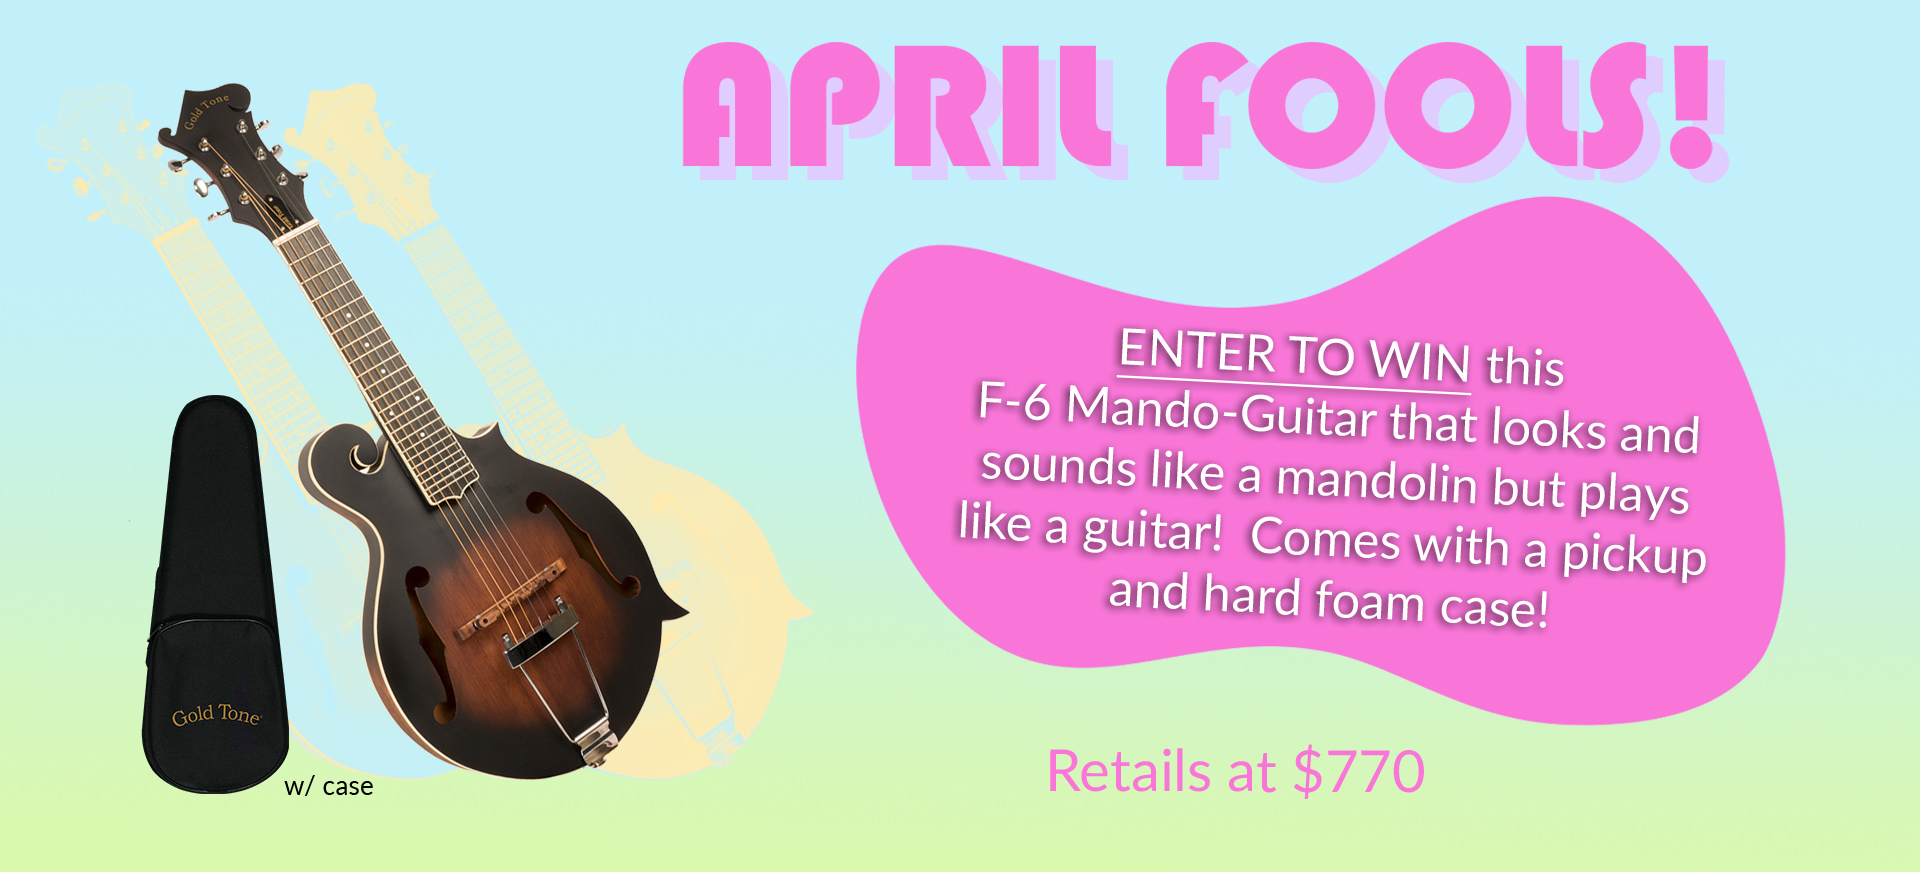 F-6: F-style Mando-Guitar Giveaway Signup